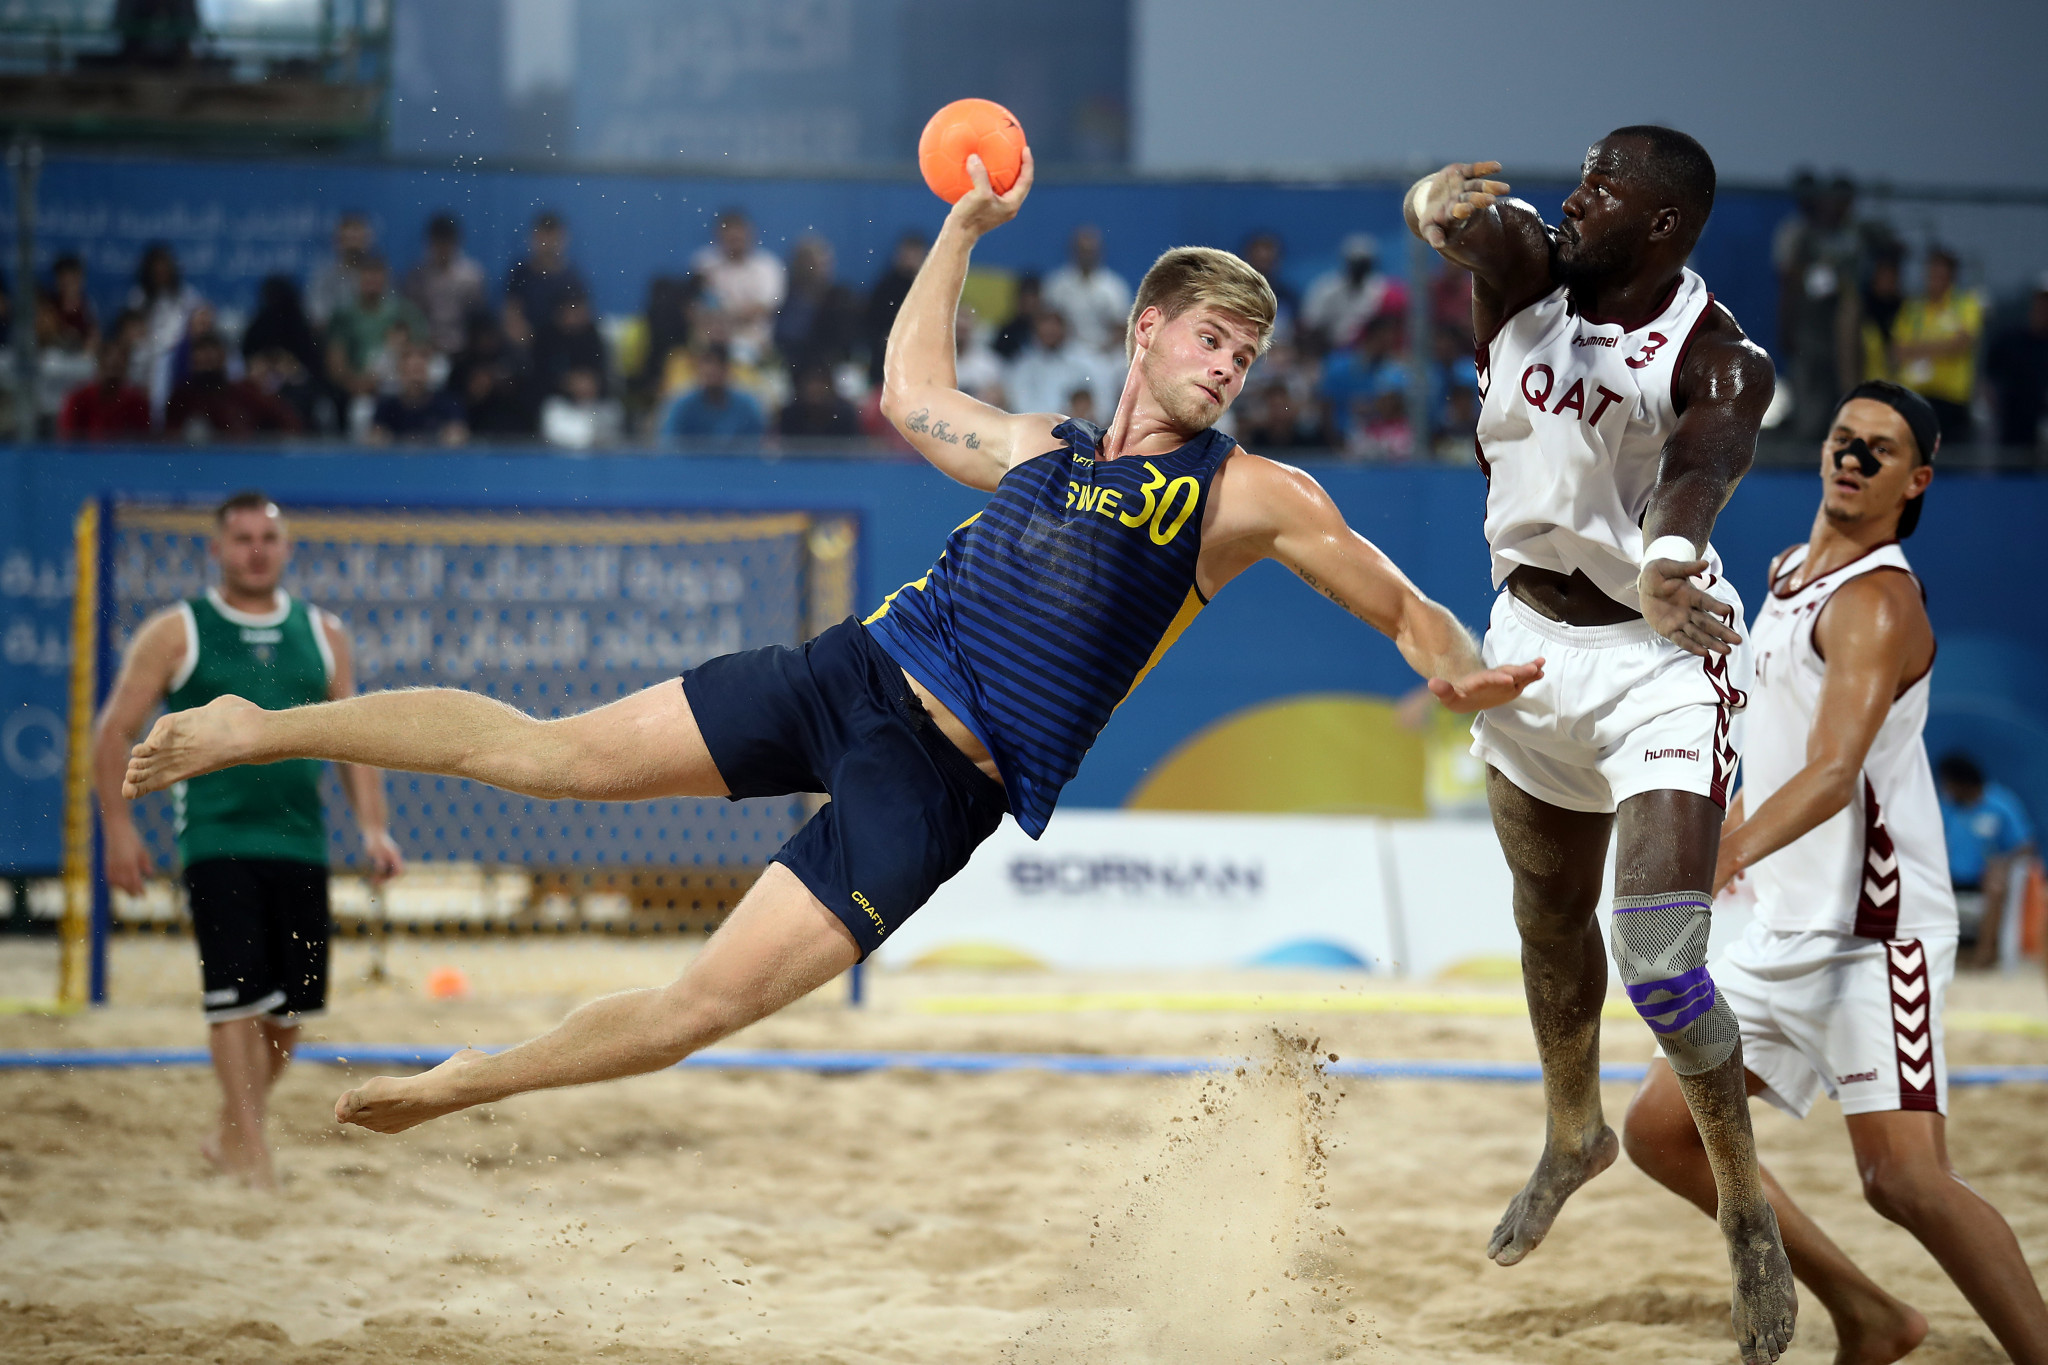 Beach handball has been proposed for inclusion at Paris 2024 ©Getty Images